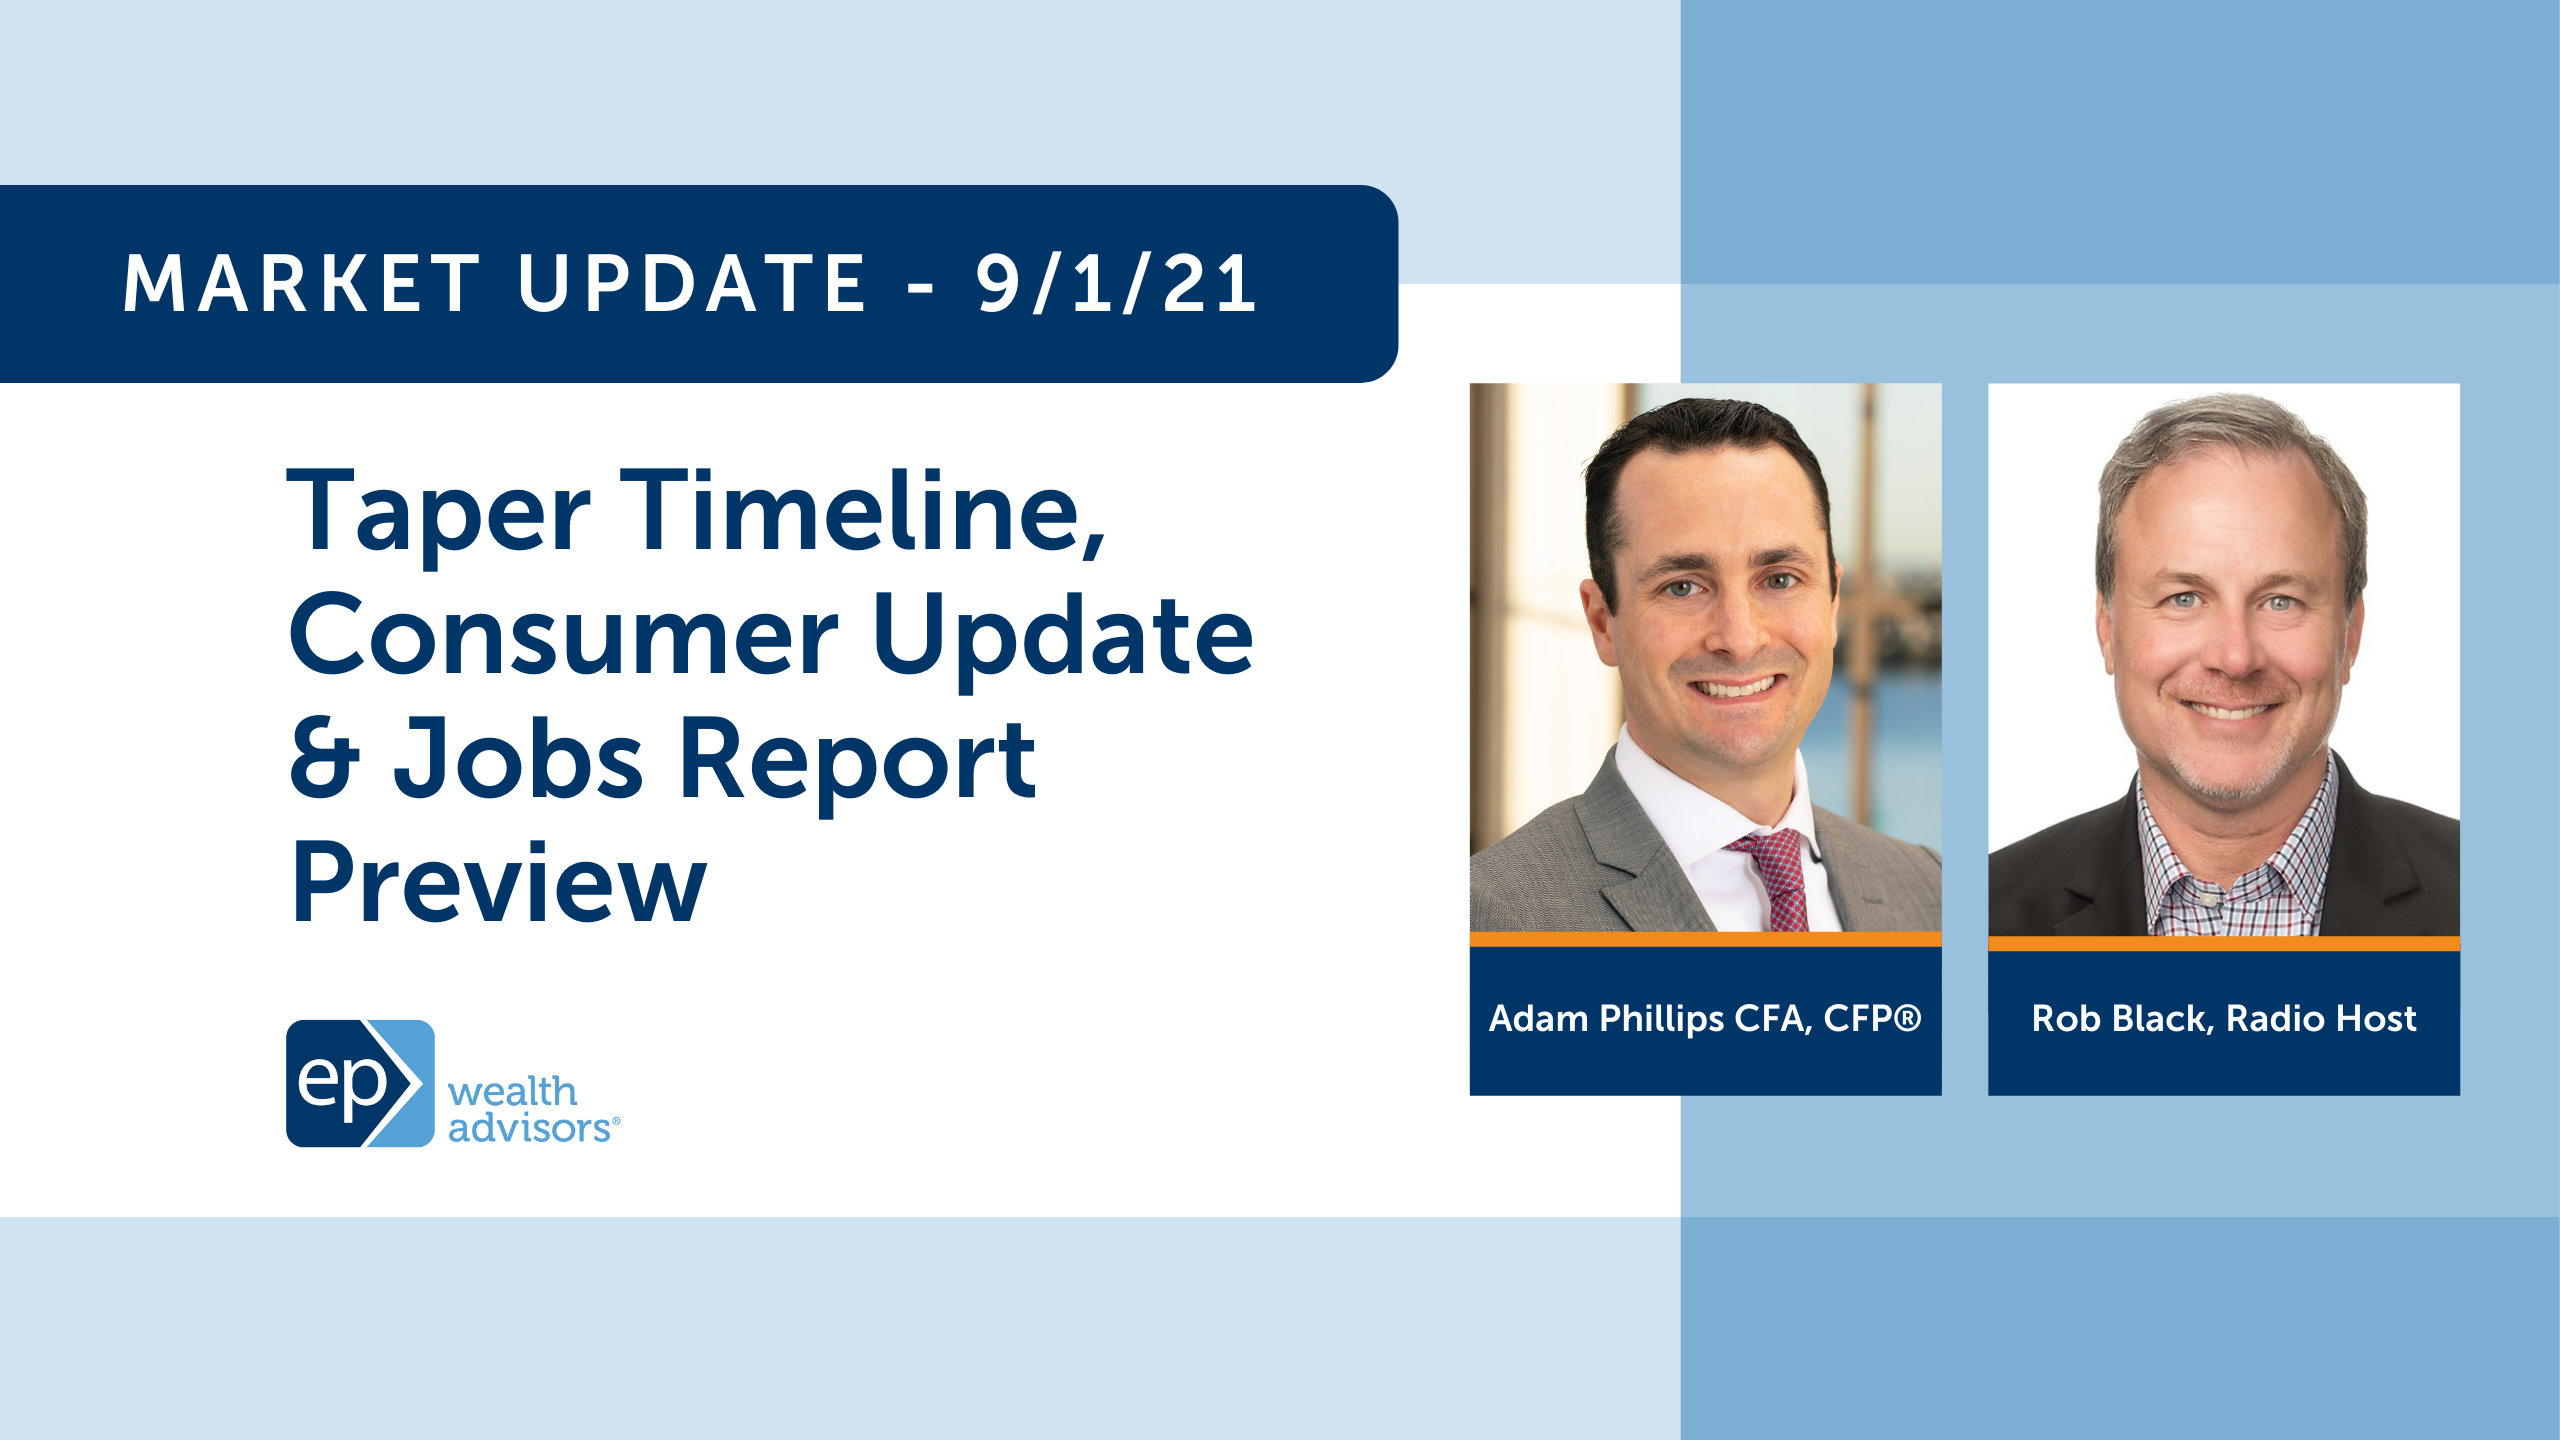 Taper Timeline, Consumer Update & Jobs Report Preview